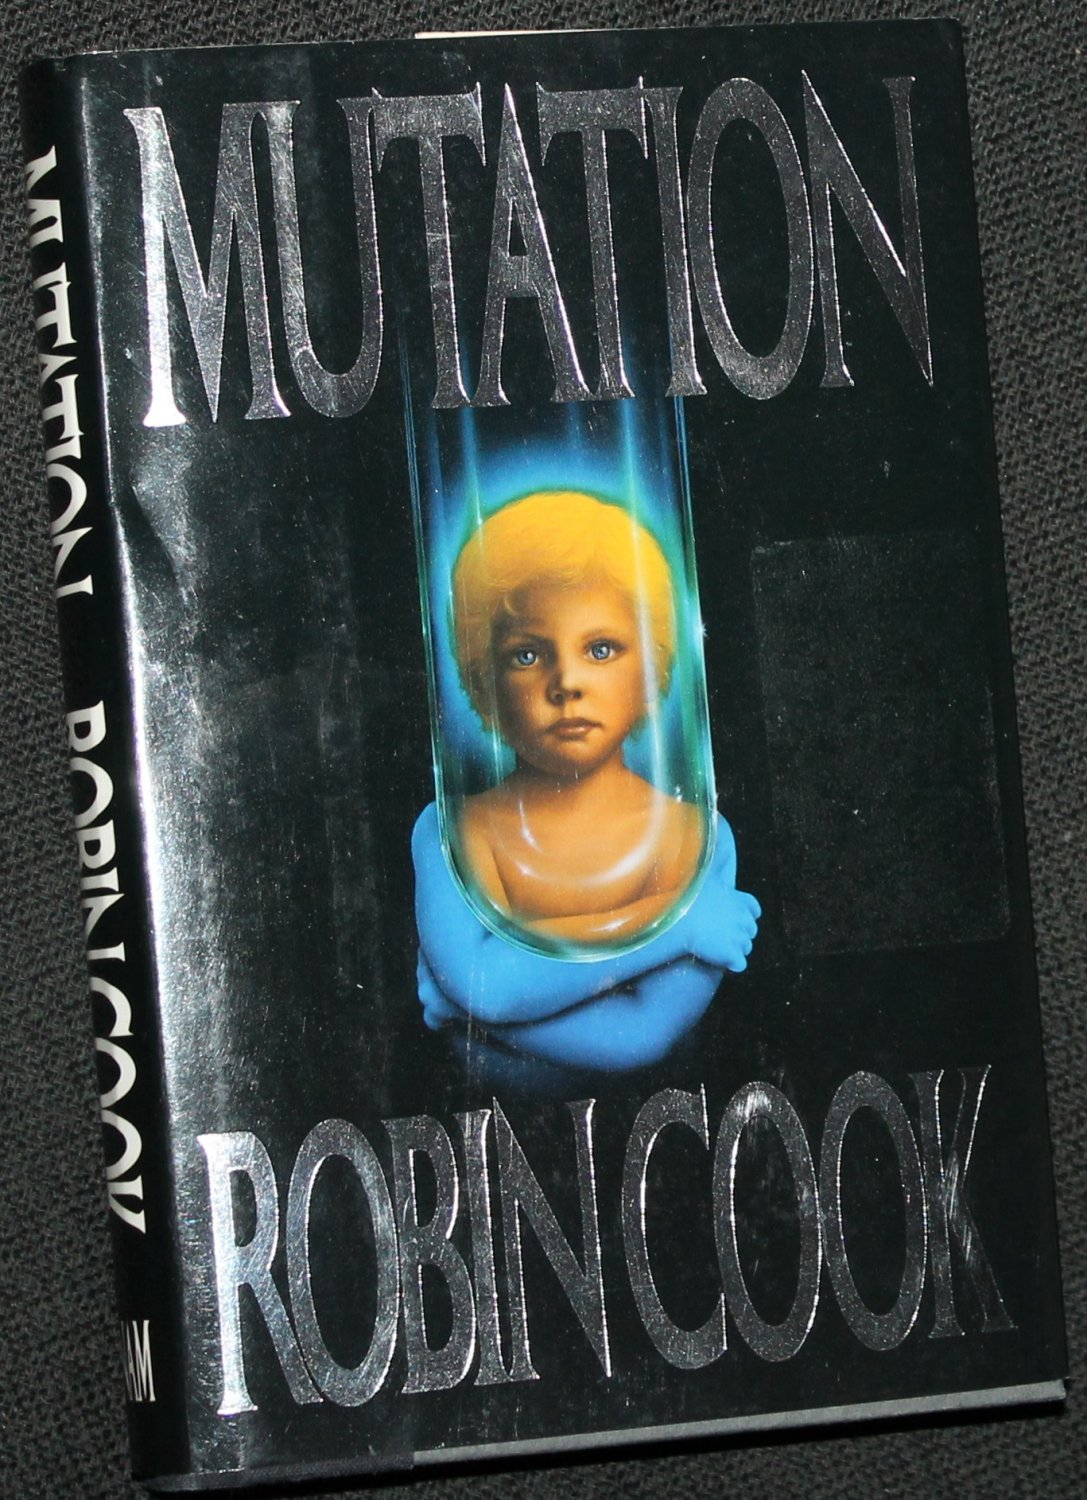 Mutation novel by Robin Cook - hardcover book